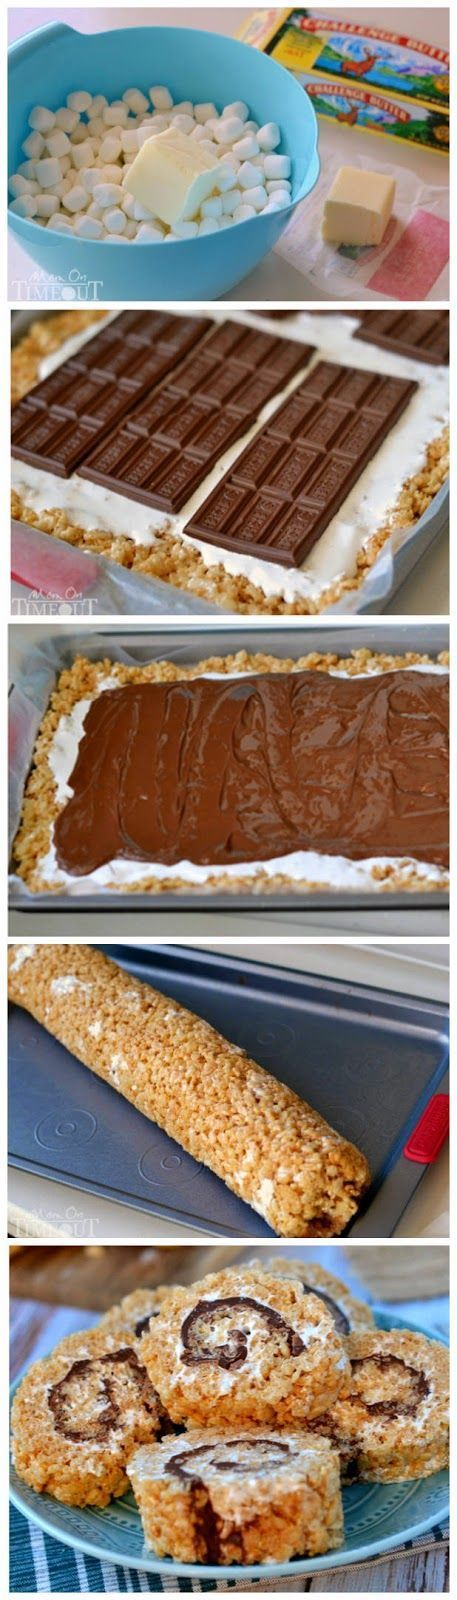 Oh my, this is so naughty but I really want this right now. #snowstormtreats S'mores Rice Krispie Treats: